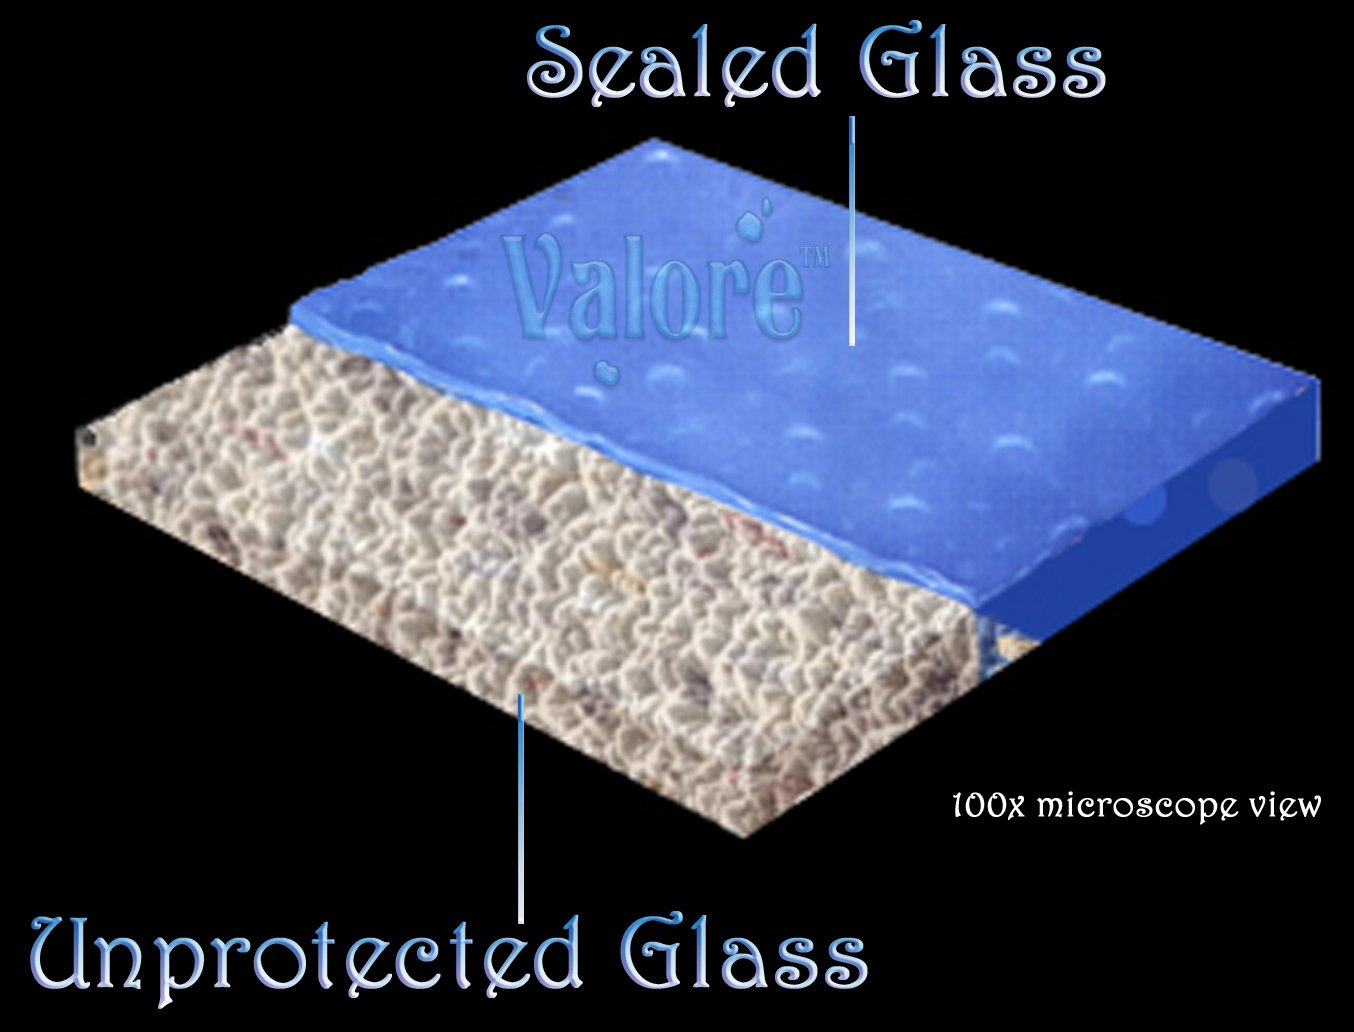 Ds102 for 38 glass bypass slider glass shower door seal 32 38 glass bypass slider glass shower door seal 32 length free 4oz bottle of valore sealer dont be fooled by cheap imported seals and sweeps vtopaller Image collections